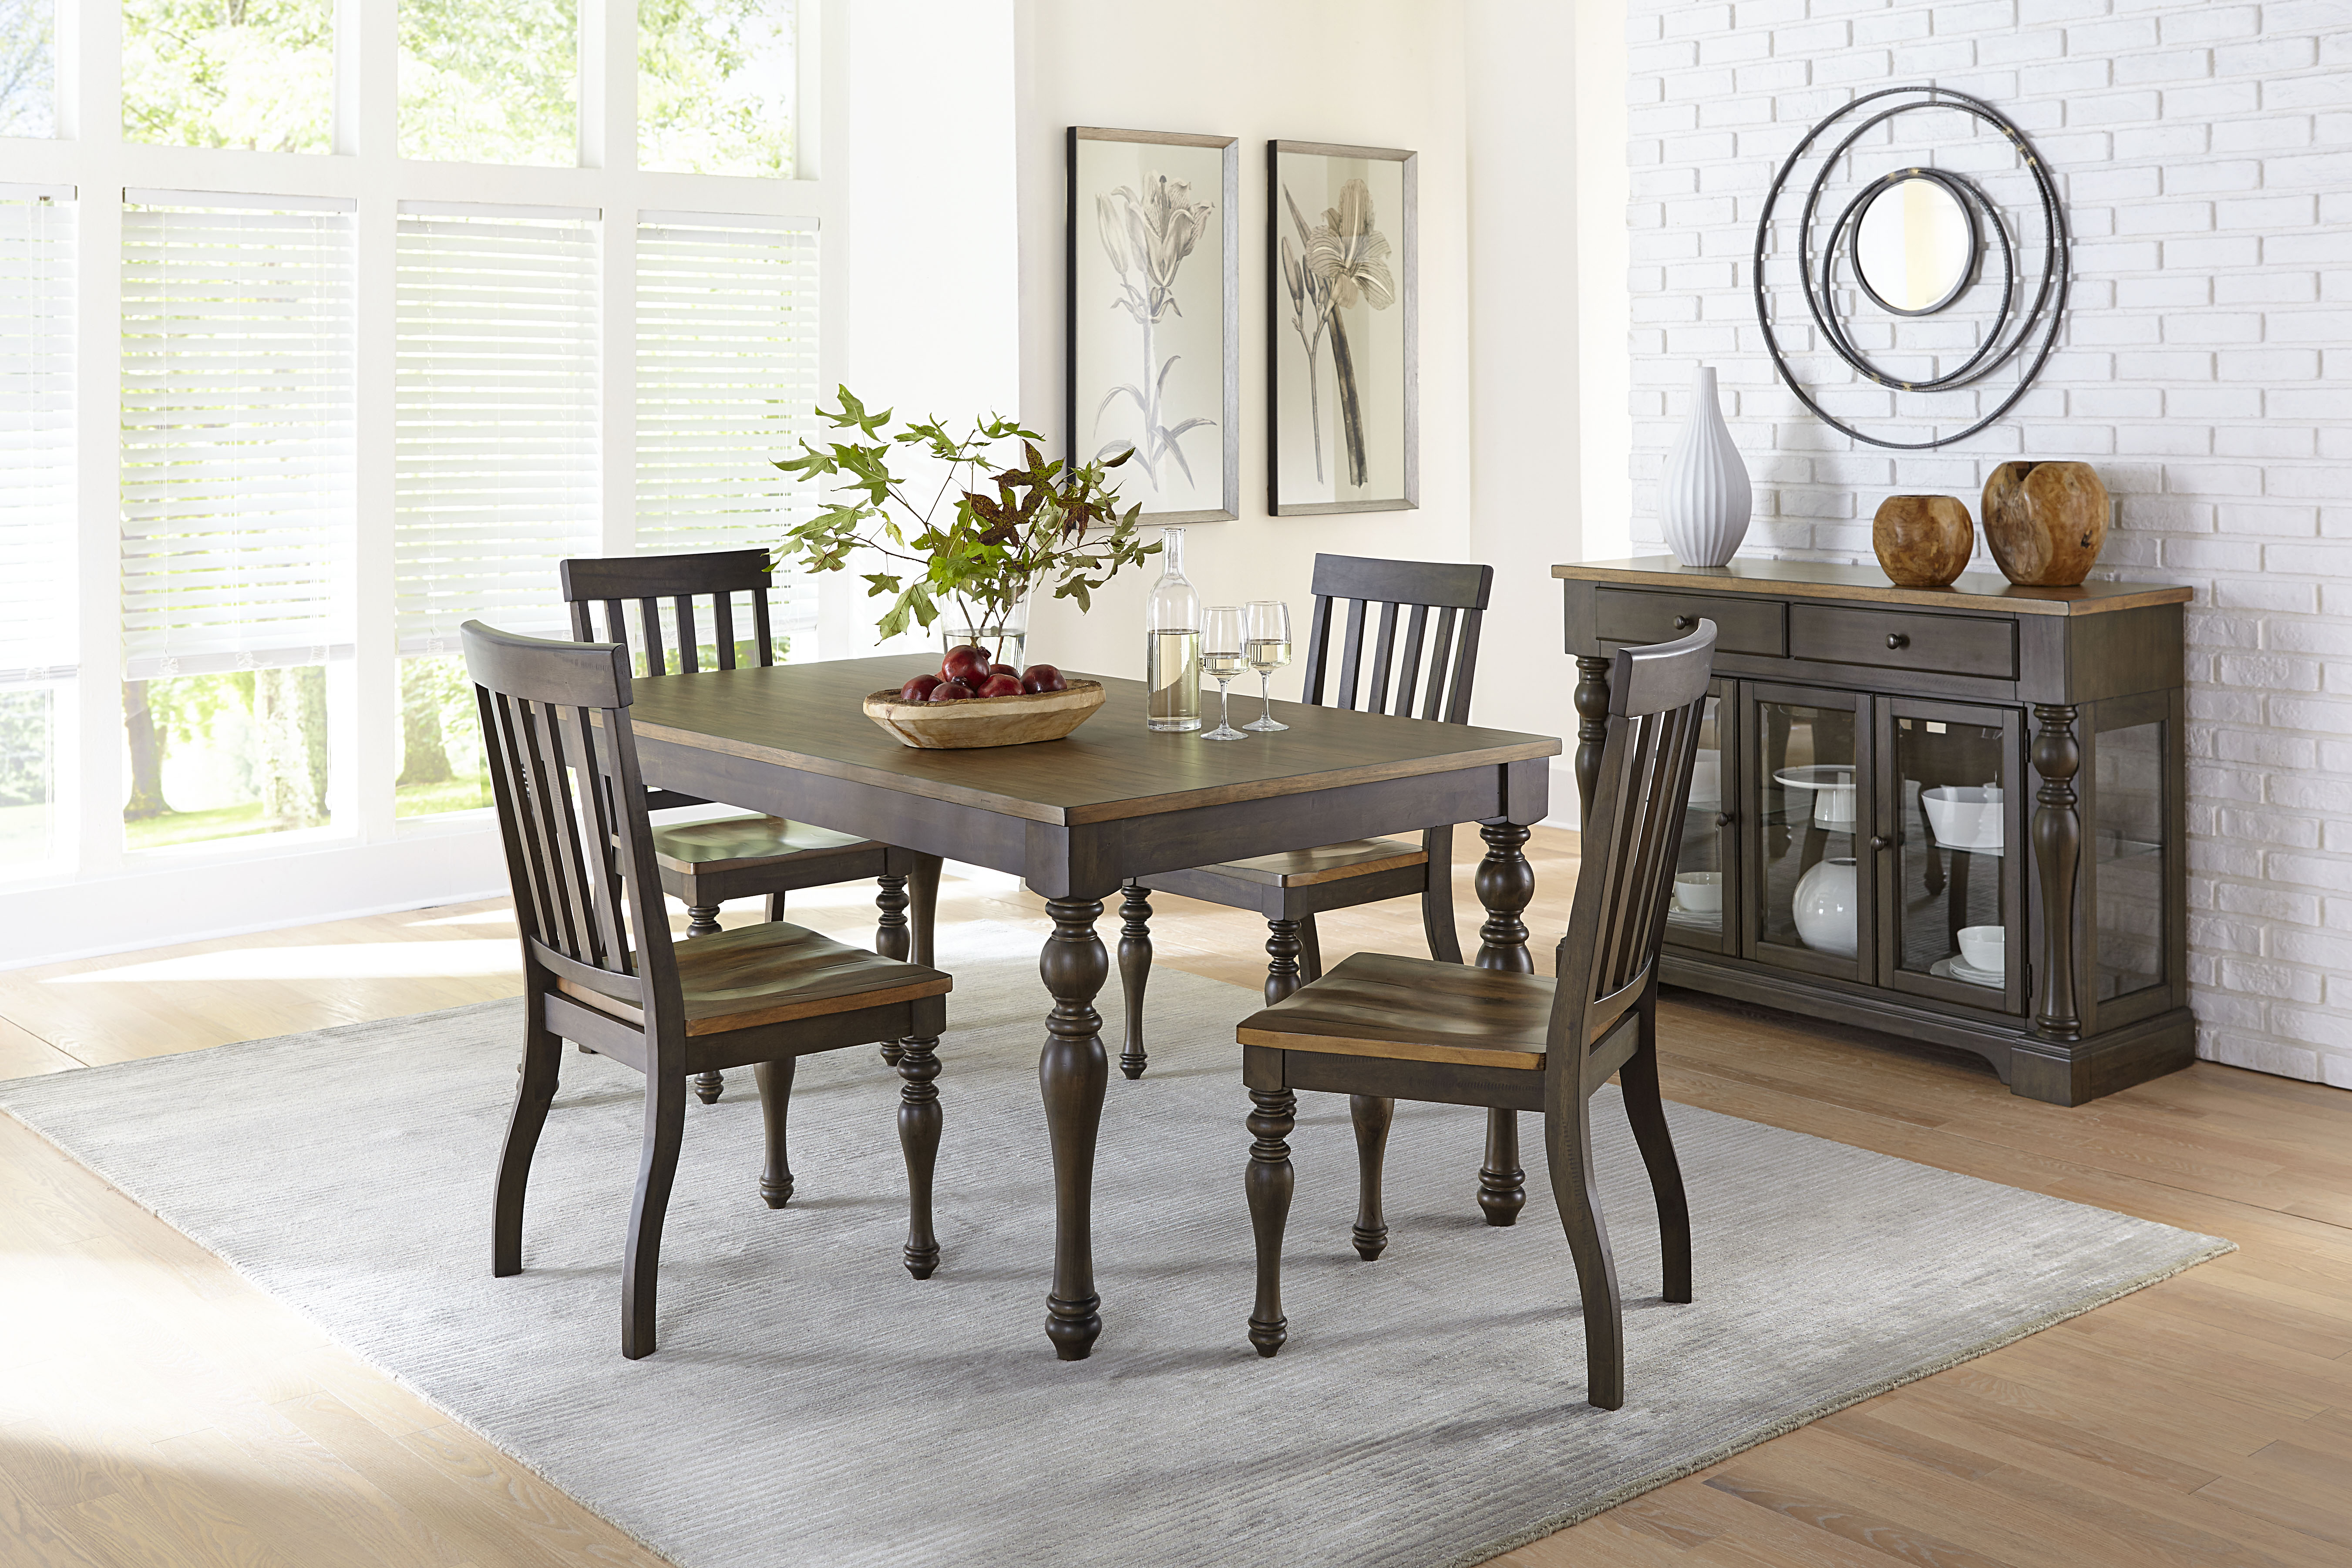 Inspiration about When All Is Said & Dunmore: We Love This New Dining Set! Intended For Recent Cargo 5 Piece Dining Sets (#11 of 20)